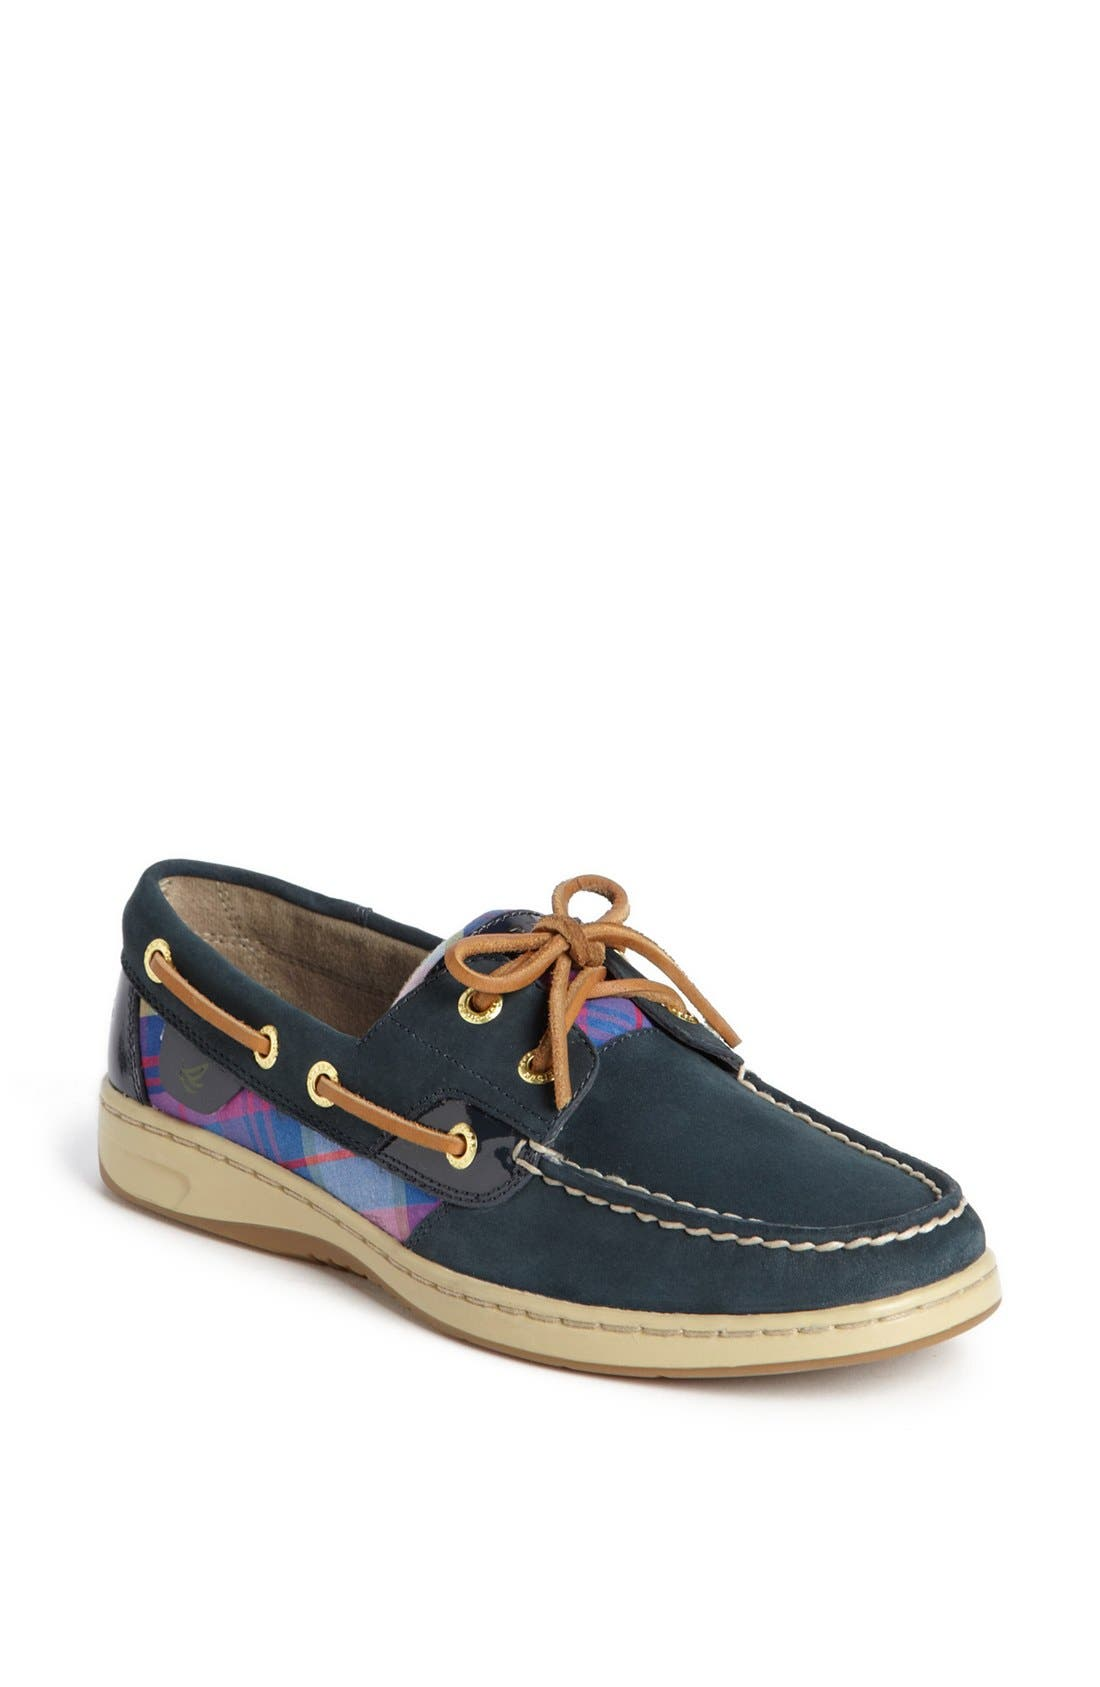 Main Image - Sperry 'Bluefish 2-Eye' Boat Shoe (Women)